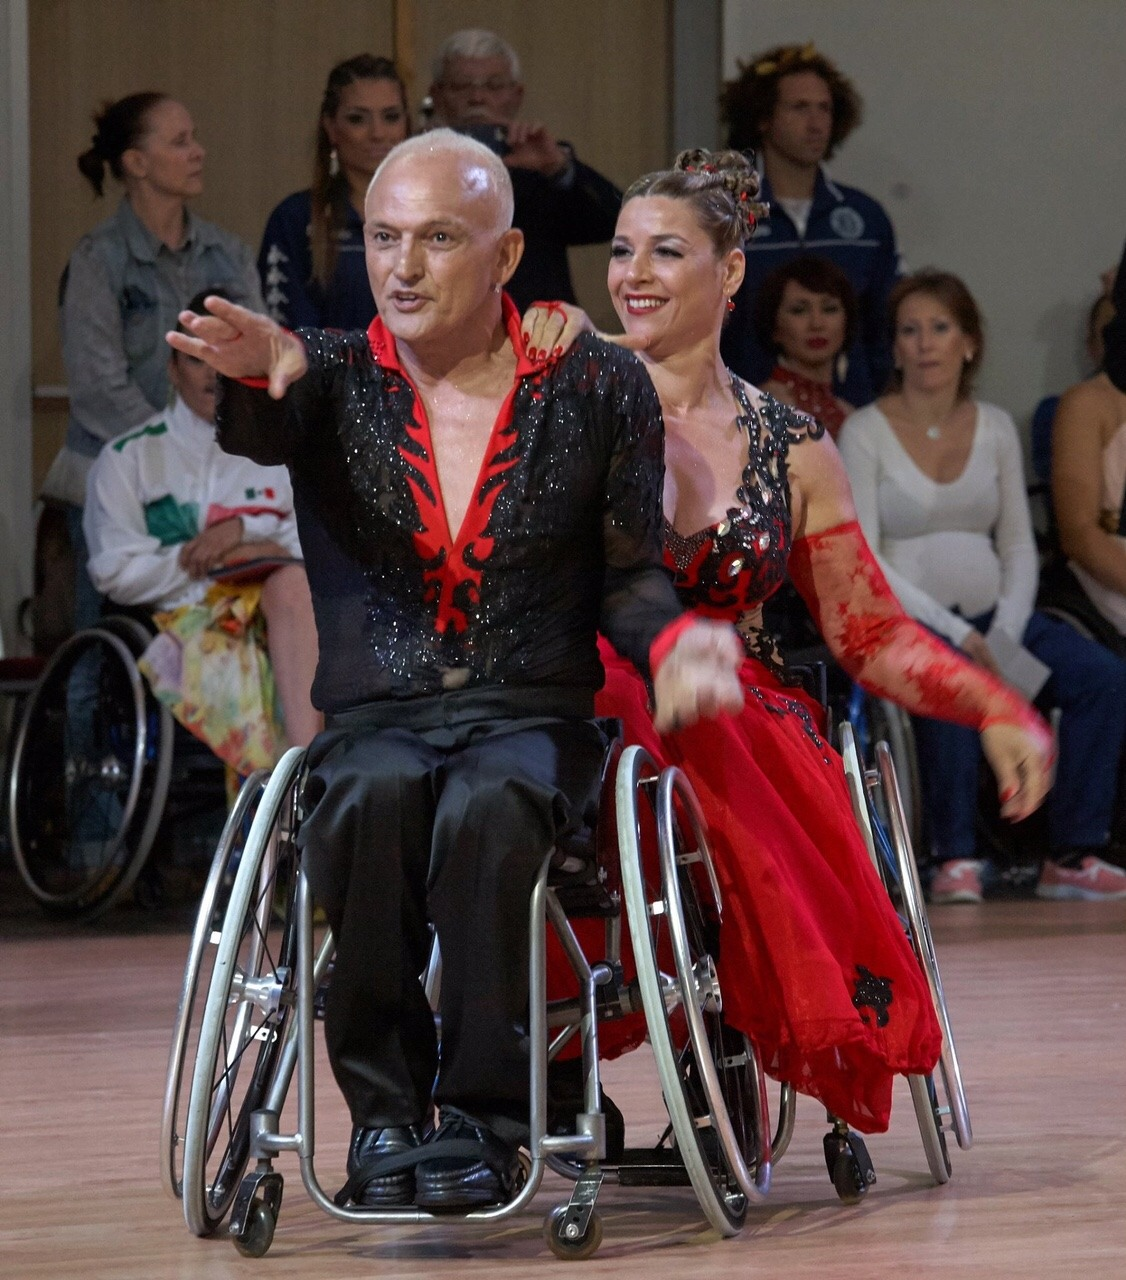 Wheelchair Dancers Sami and Maytal